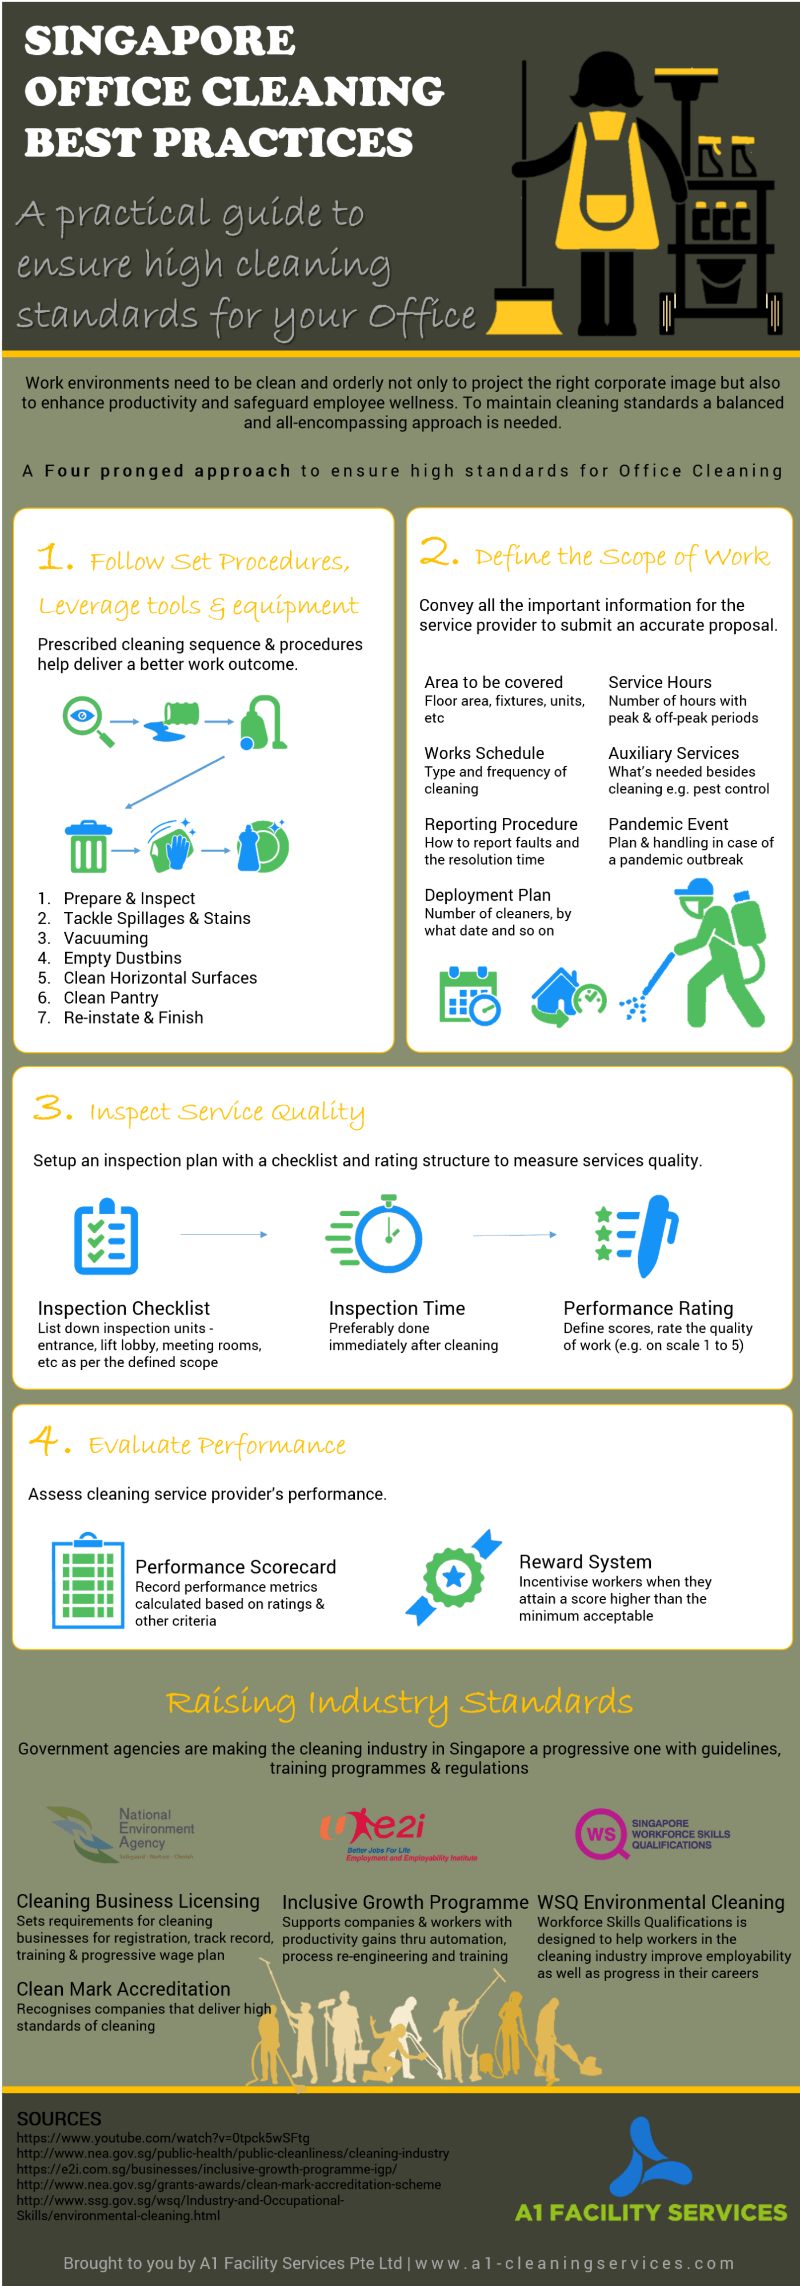 Infographic on cleaning best practices